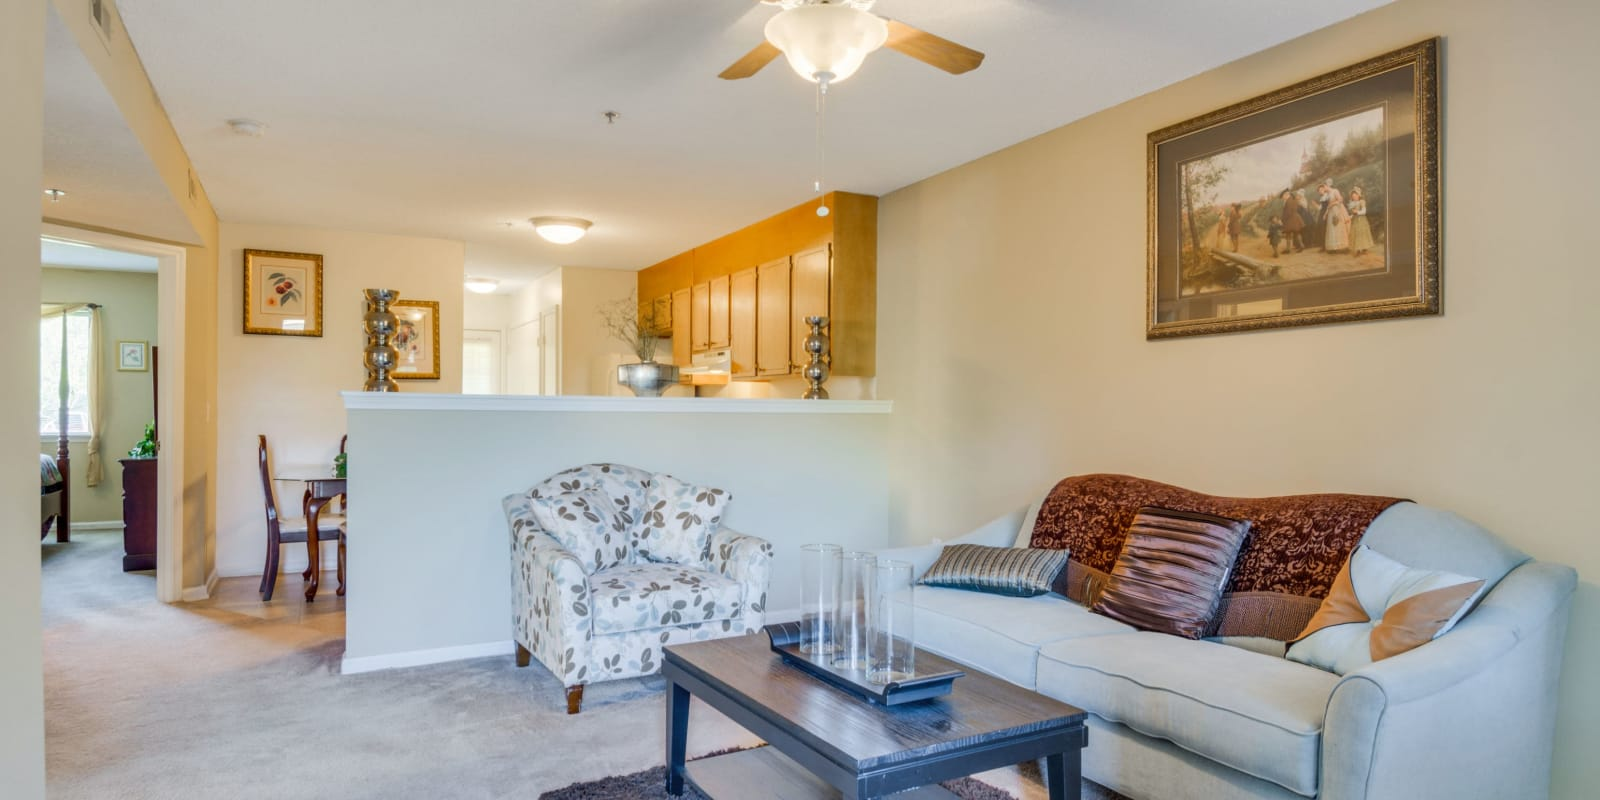 A living room with a ceiling fan at Woodbrook Apartment Homes in Monroe, North Carolina